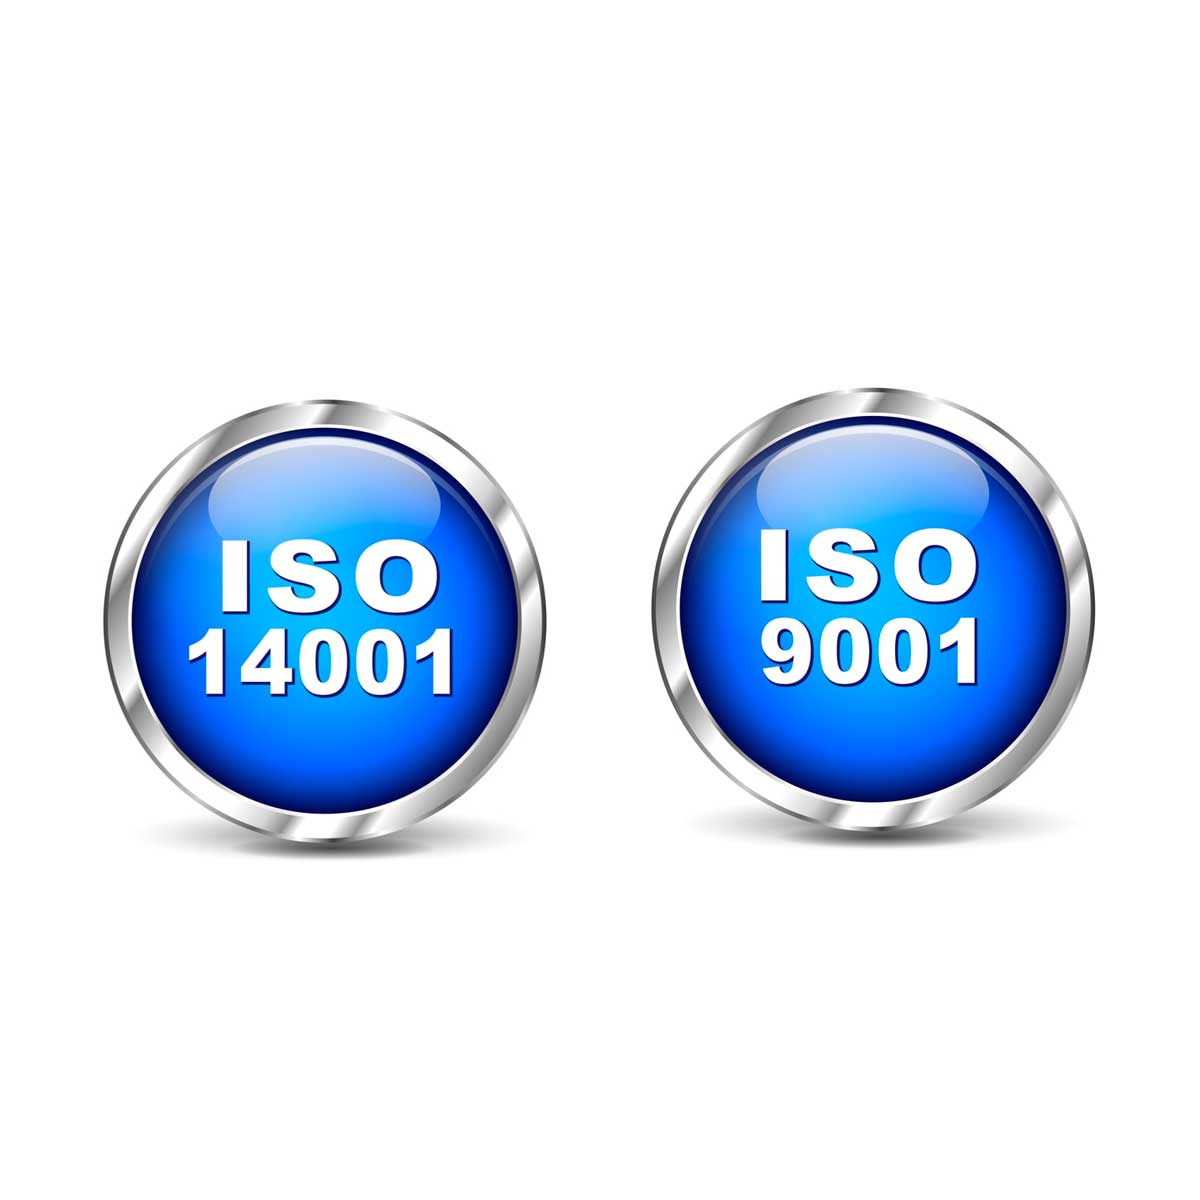 Auditor Interni ISO 9001:2015 e 14001:2015